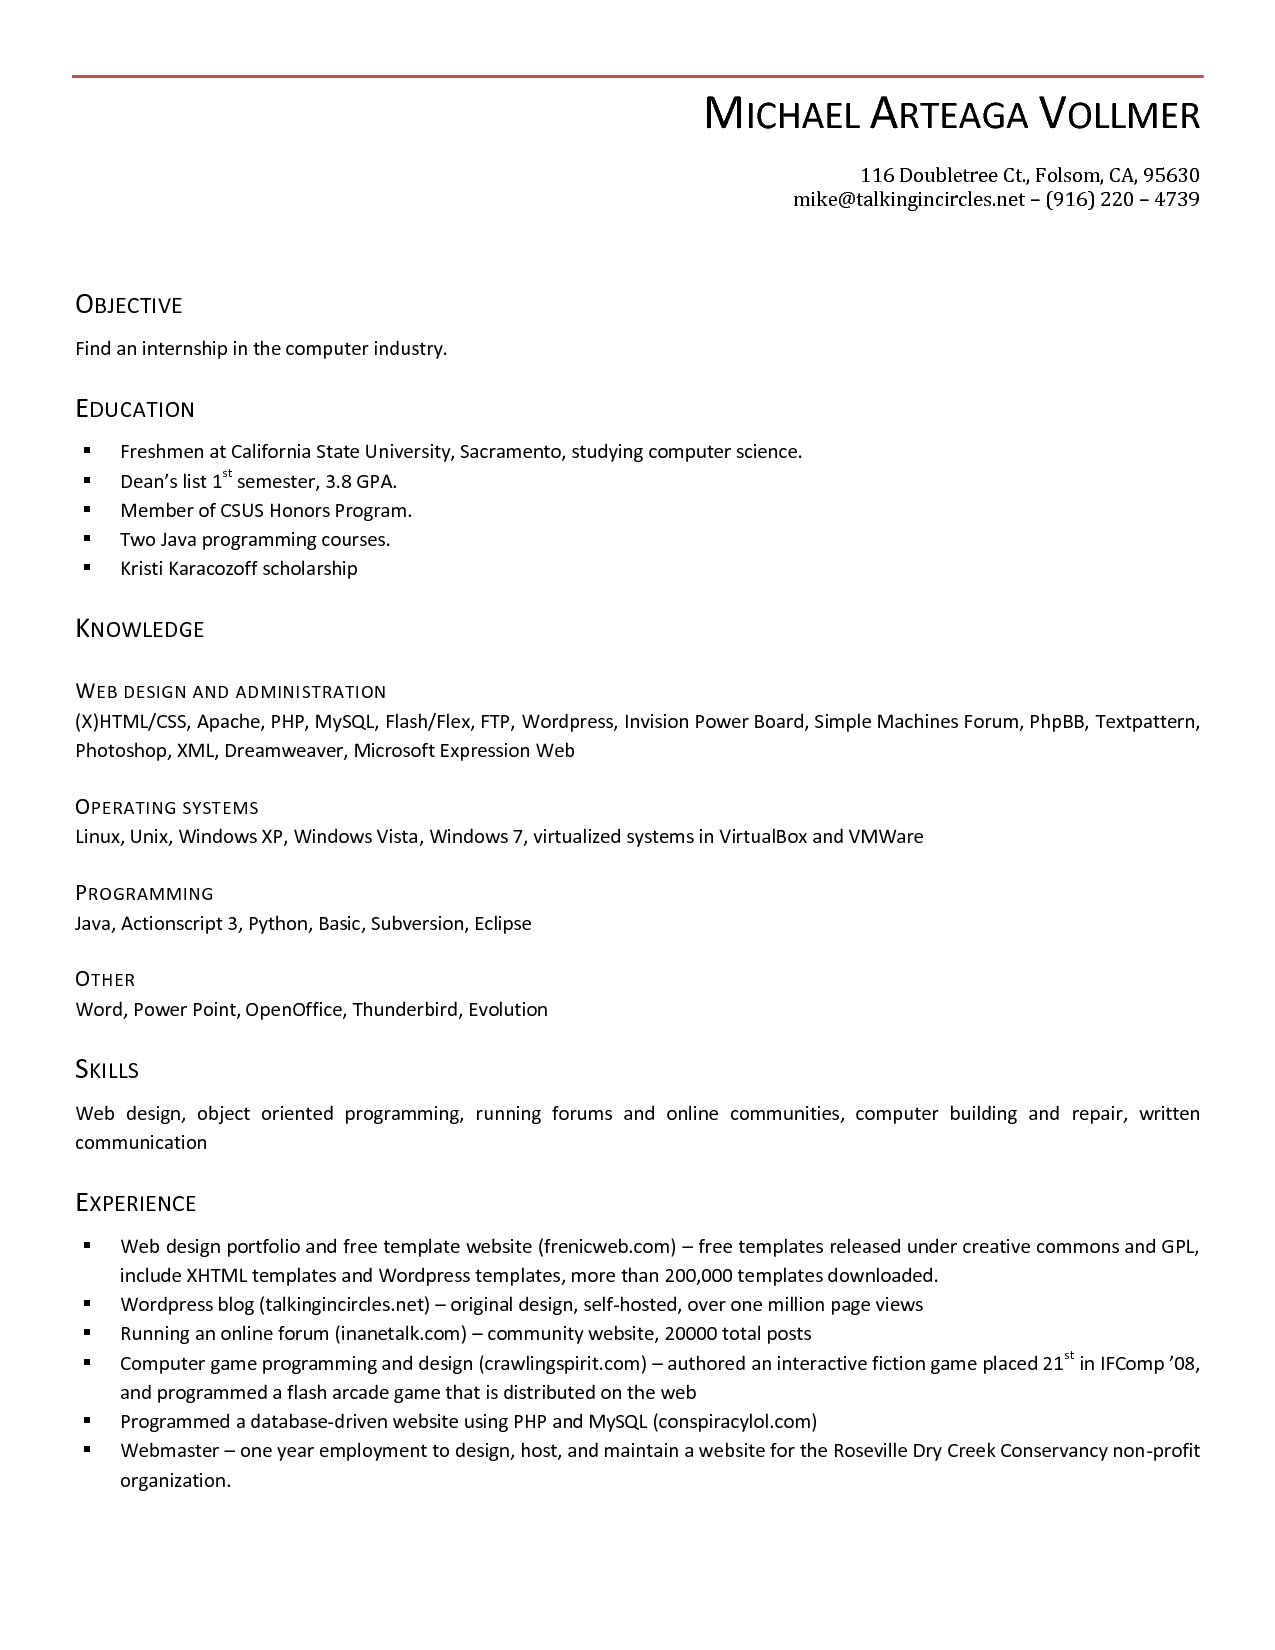 Open Office Resume Templates Free Resume Templates For Openoffice Hdresume Templates Cover Letter .